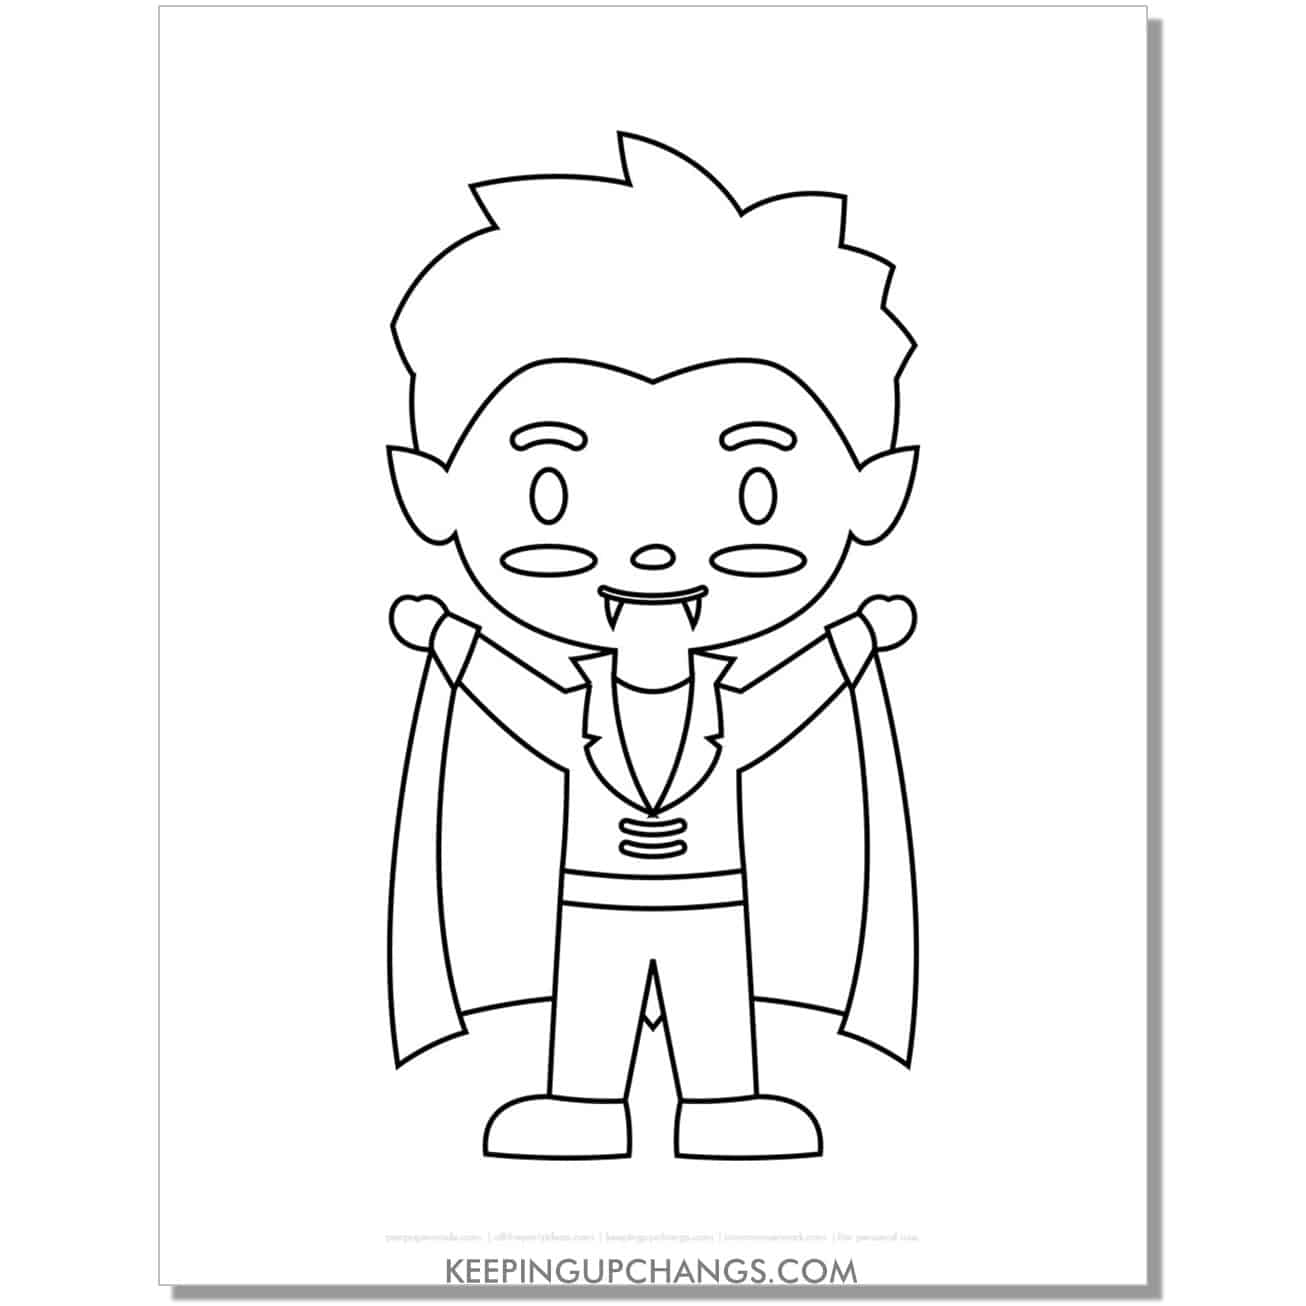 free anime vampire boy coloring page.